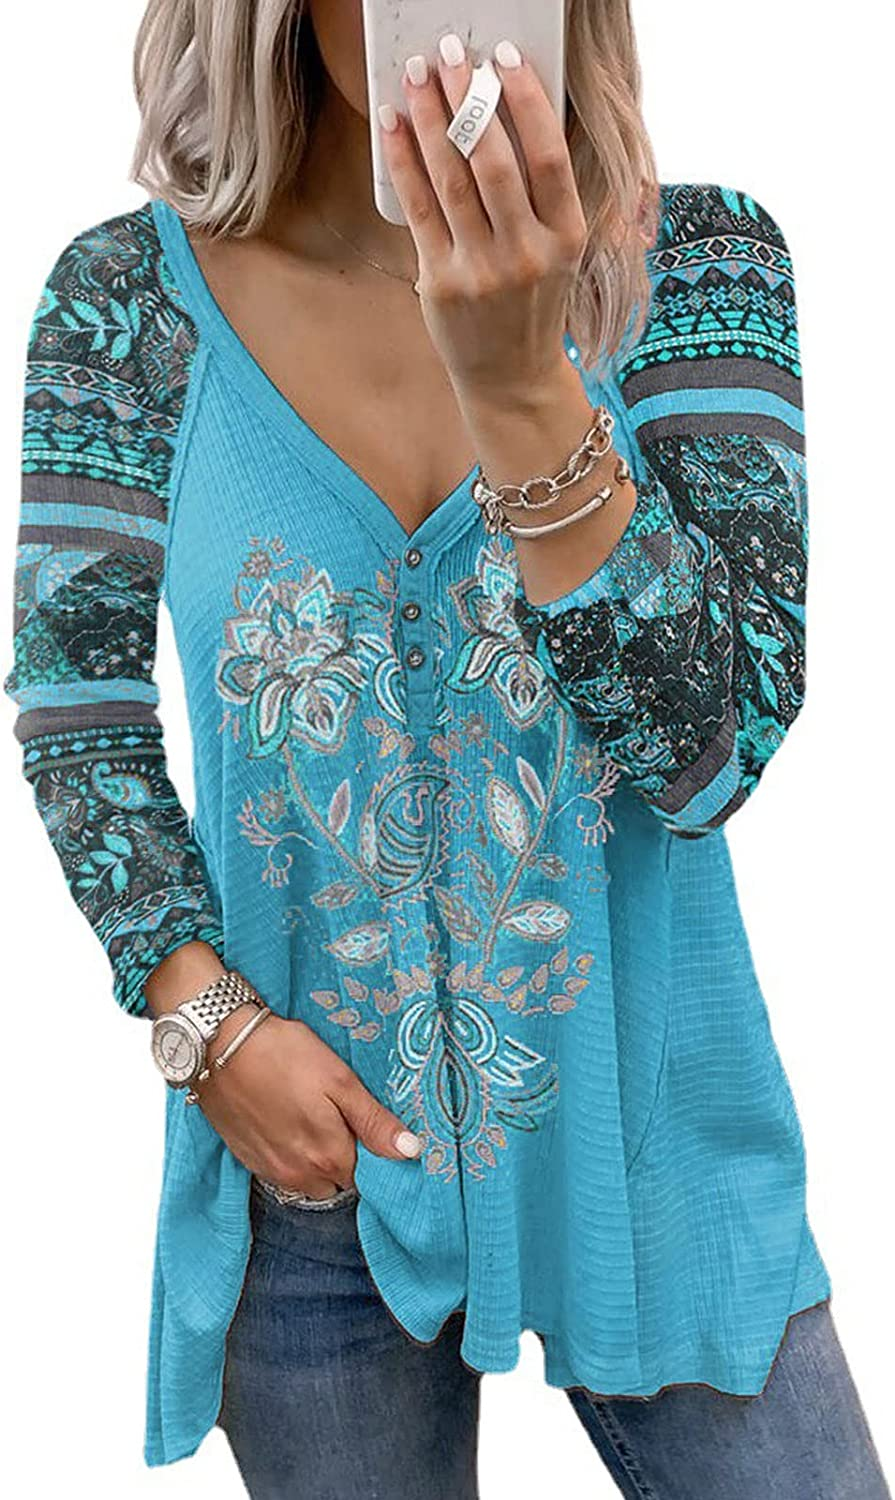 Women Tops Boho Floral Print V-Neck Long Sleeve Loose Casual Fashion Flowy Blouses Soft Comfy Pullover